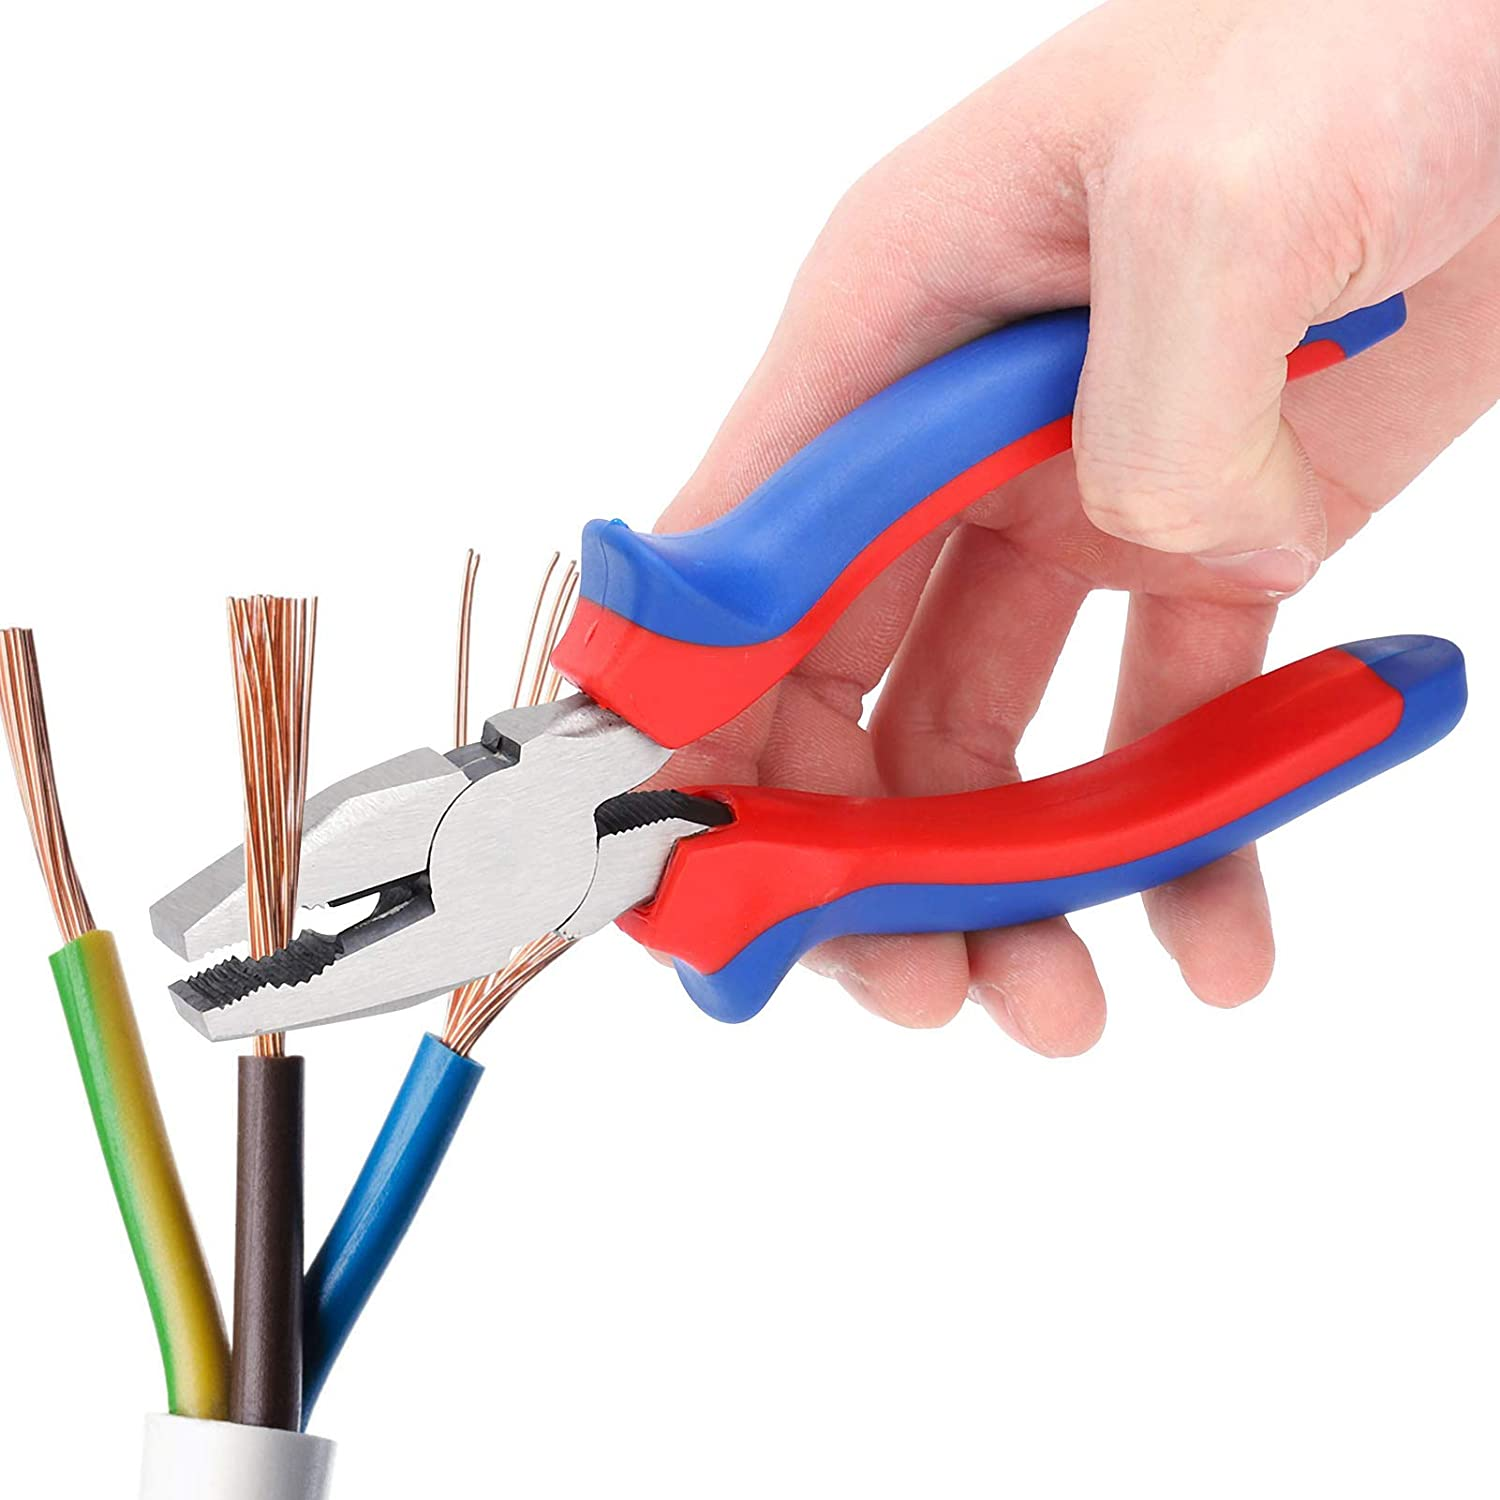 Wire Cutter Insulated Rubber Handle Conform to Ergonomic Design Two‑color Plastic Handle 45 Steel Cutting Pliers for Industrial